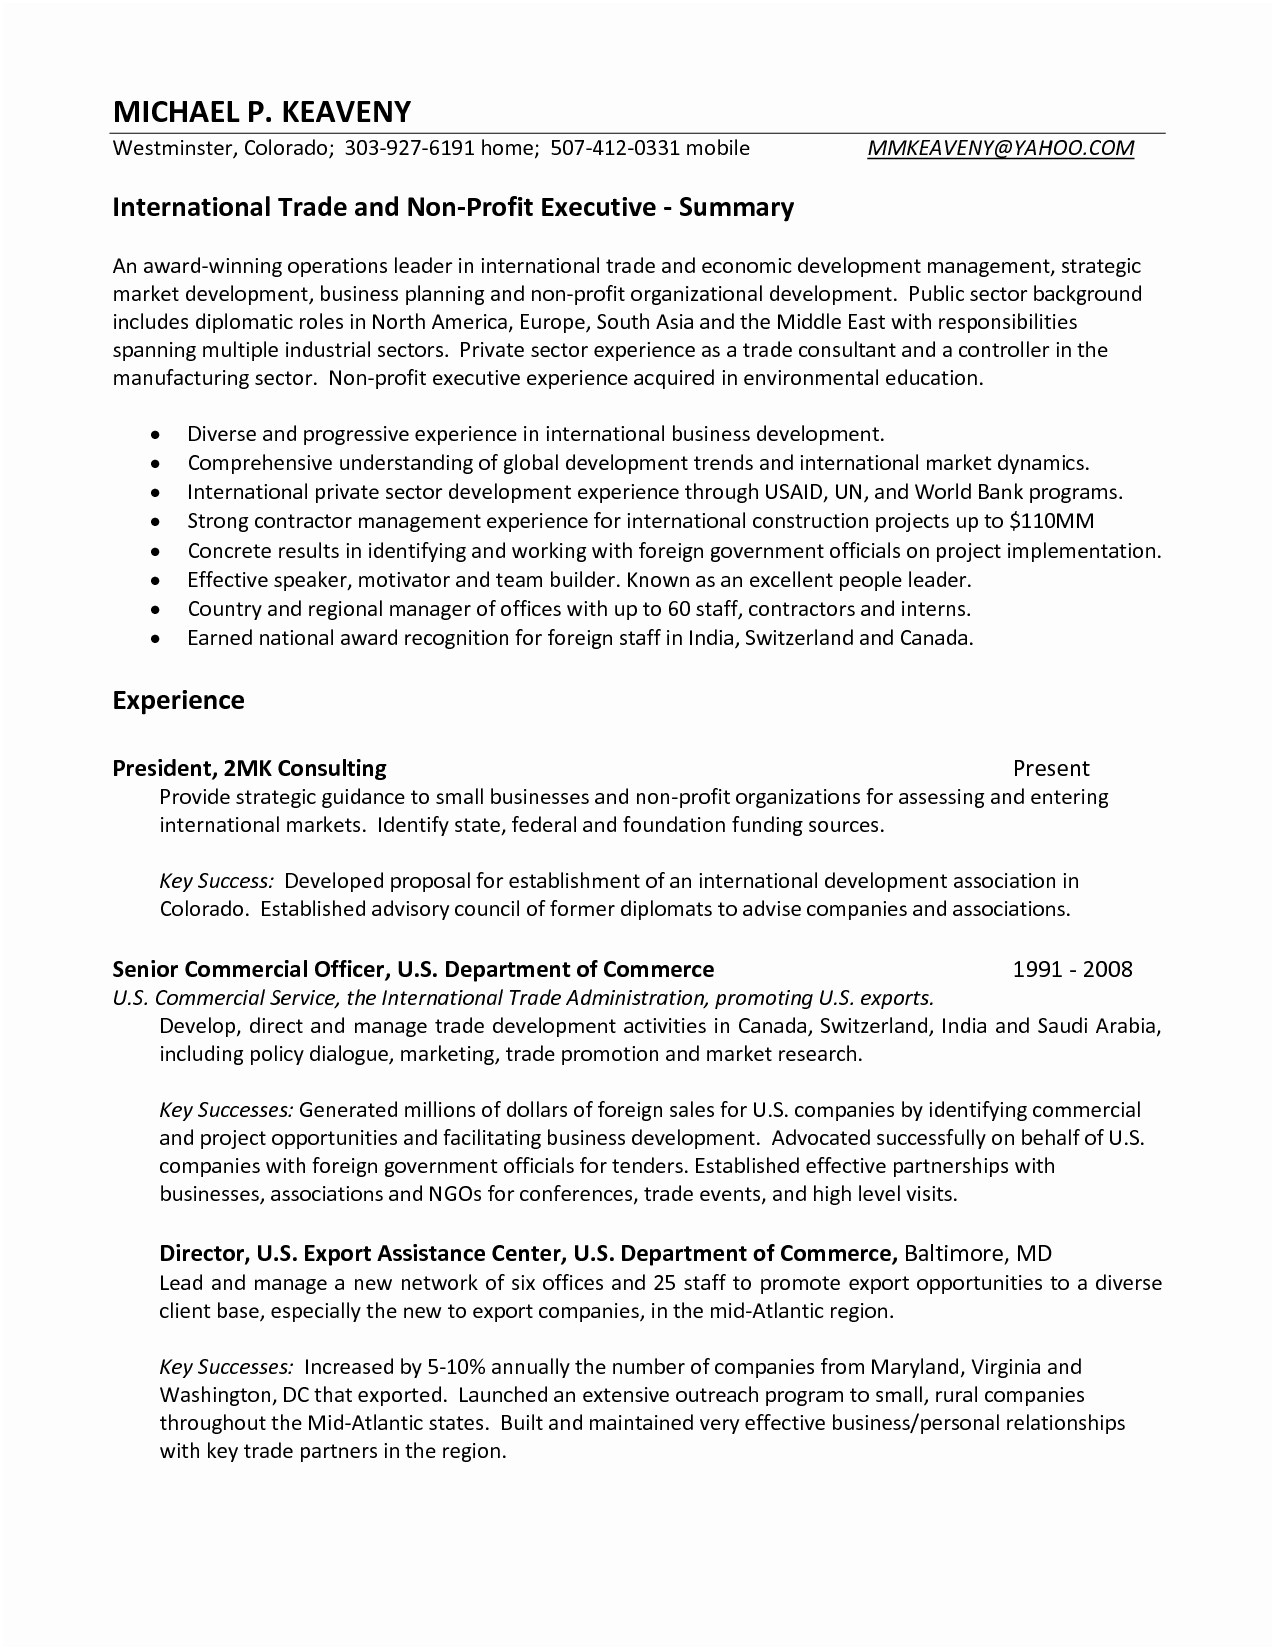 Dishwasher Description for Resume - American Resume Sample New Student Resume 0d Wallpapers 42 Awesome